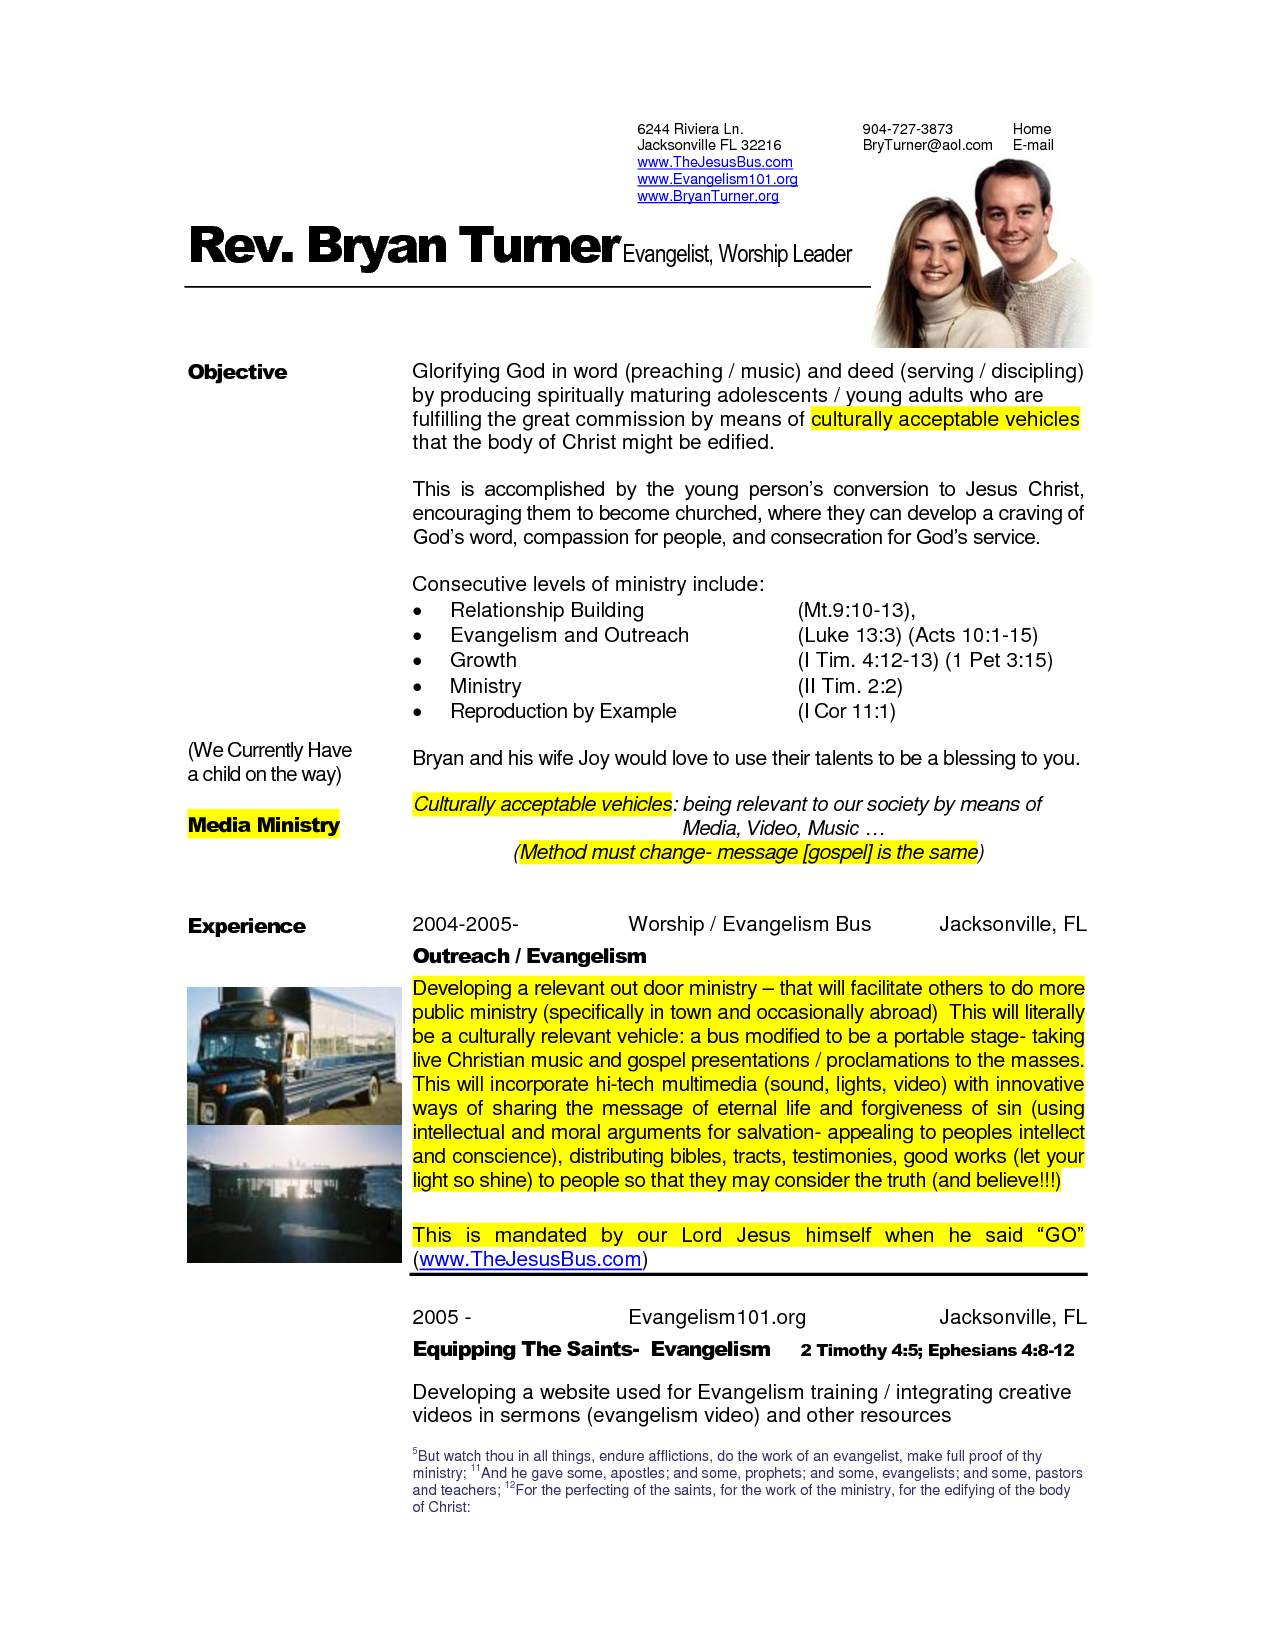 Captivating Free Examples Of Pastoral Resumes | How To Write A Pastor Resume Inside Pastor Resume Samples